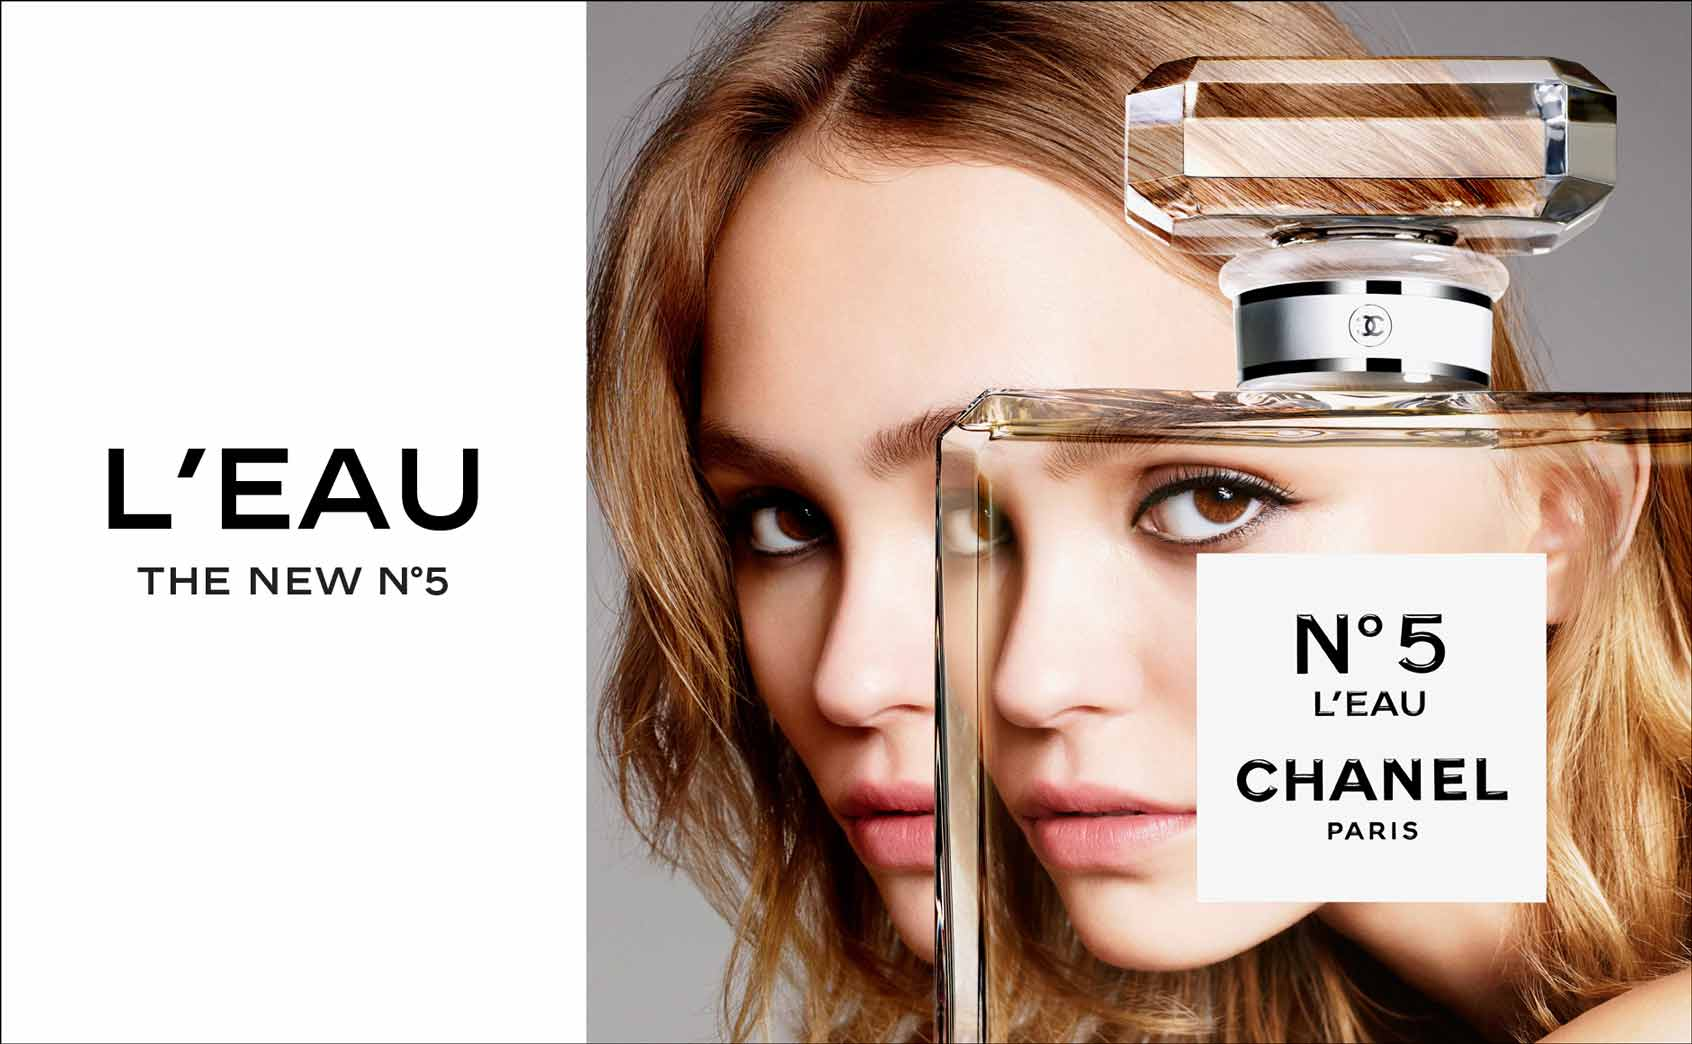 L'EAU: The New No5 - Chanel Paris